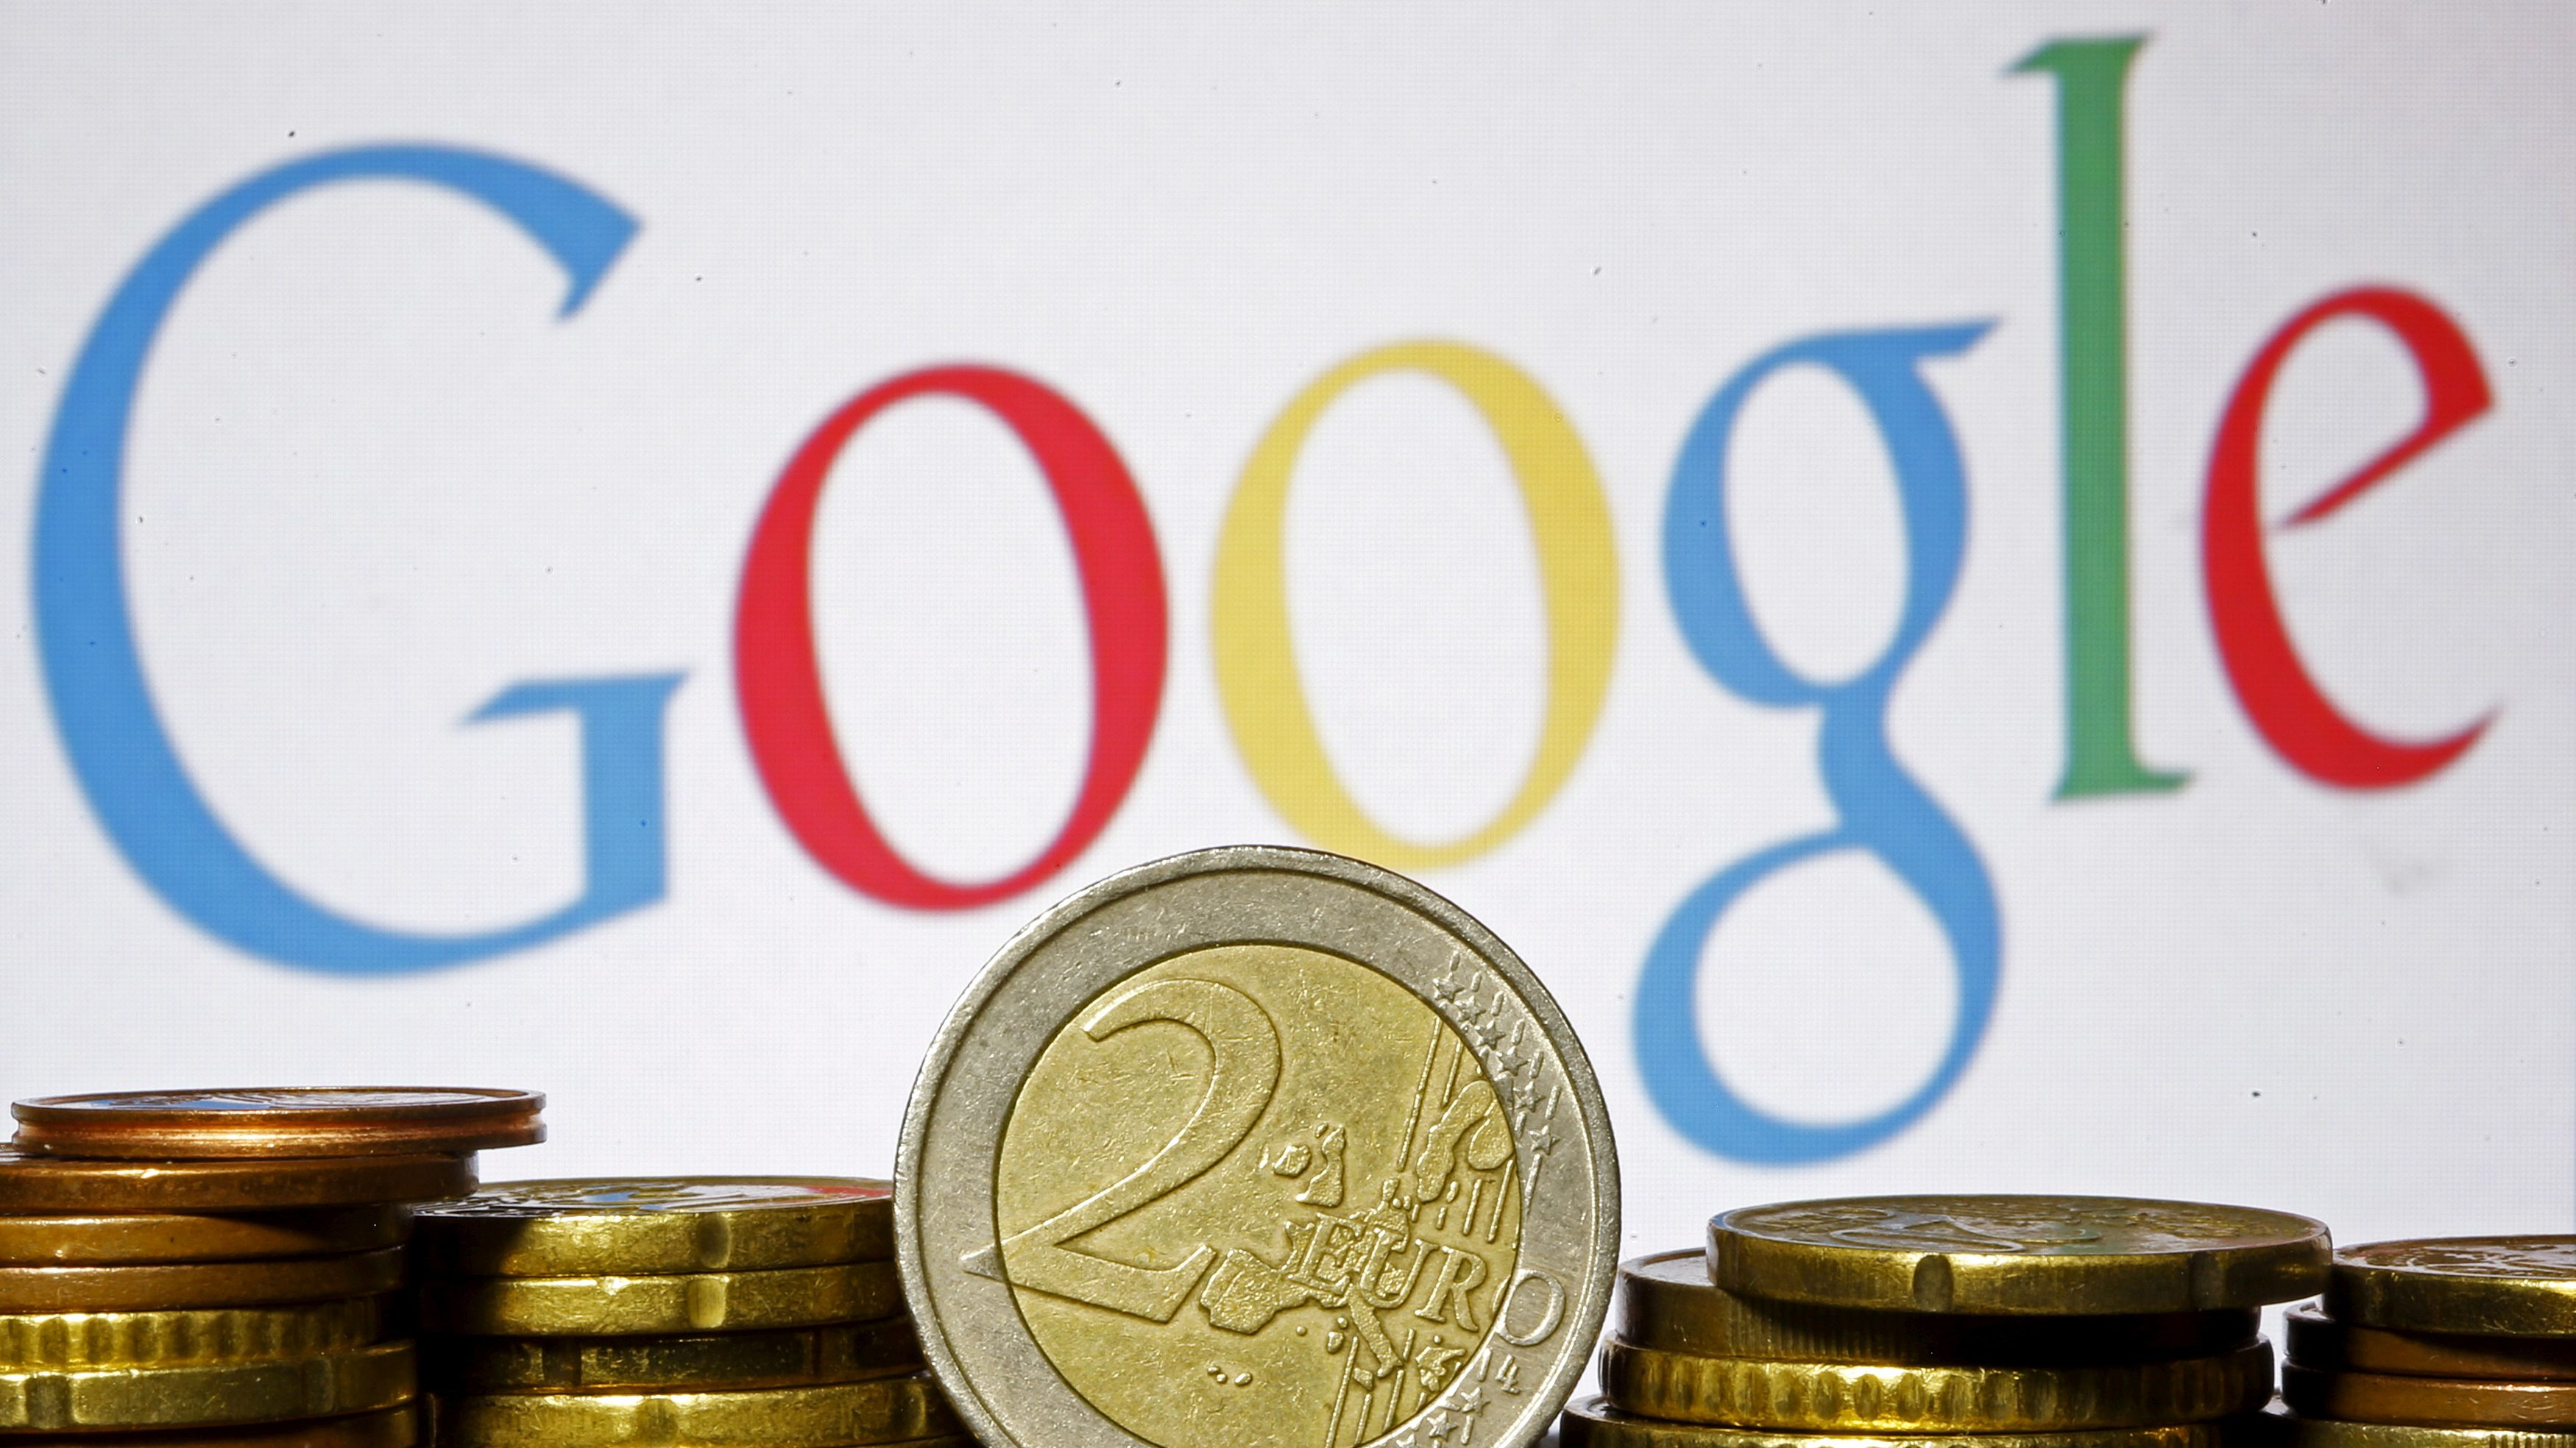 Euro coins are seen in front of a Google logo in this picture illustration, April 21, 2015.